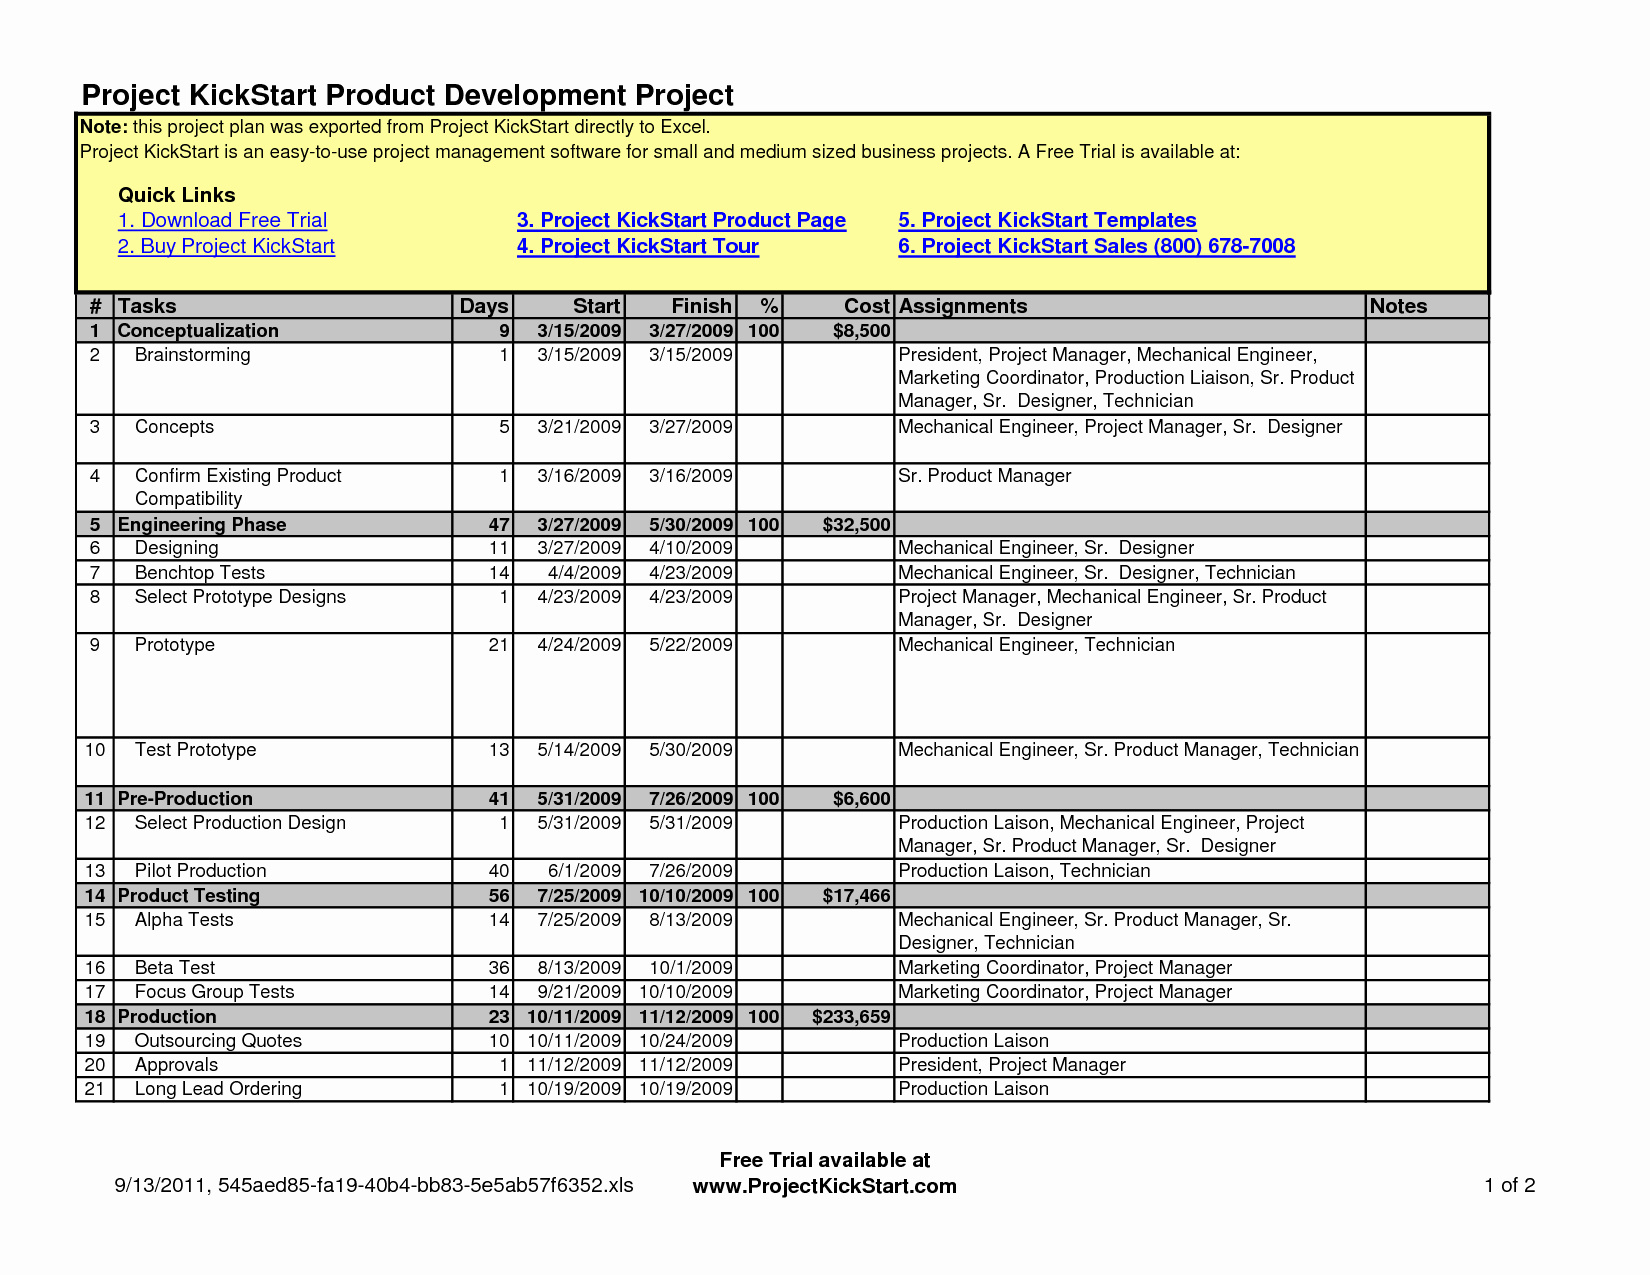 Project Plan Excel Spreadsheet Intended For Project Plan Template Excel 2013 Awesome Free Project Management